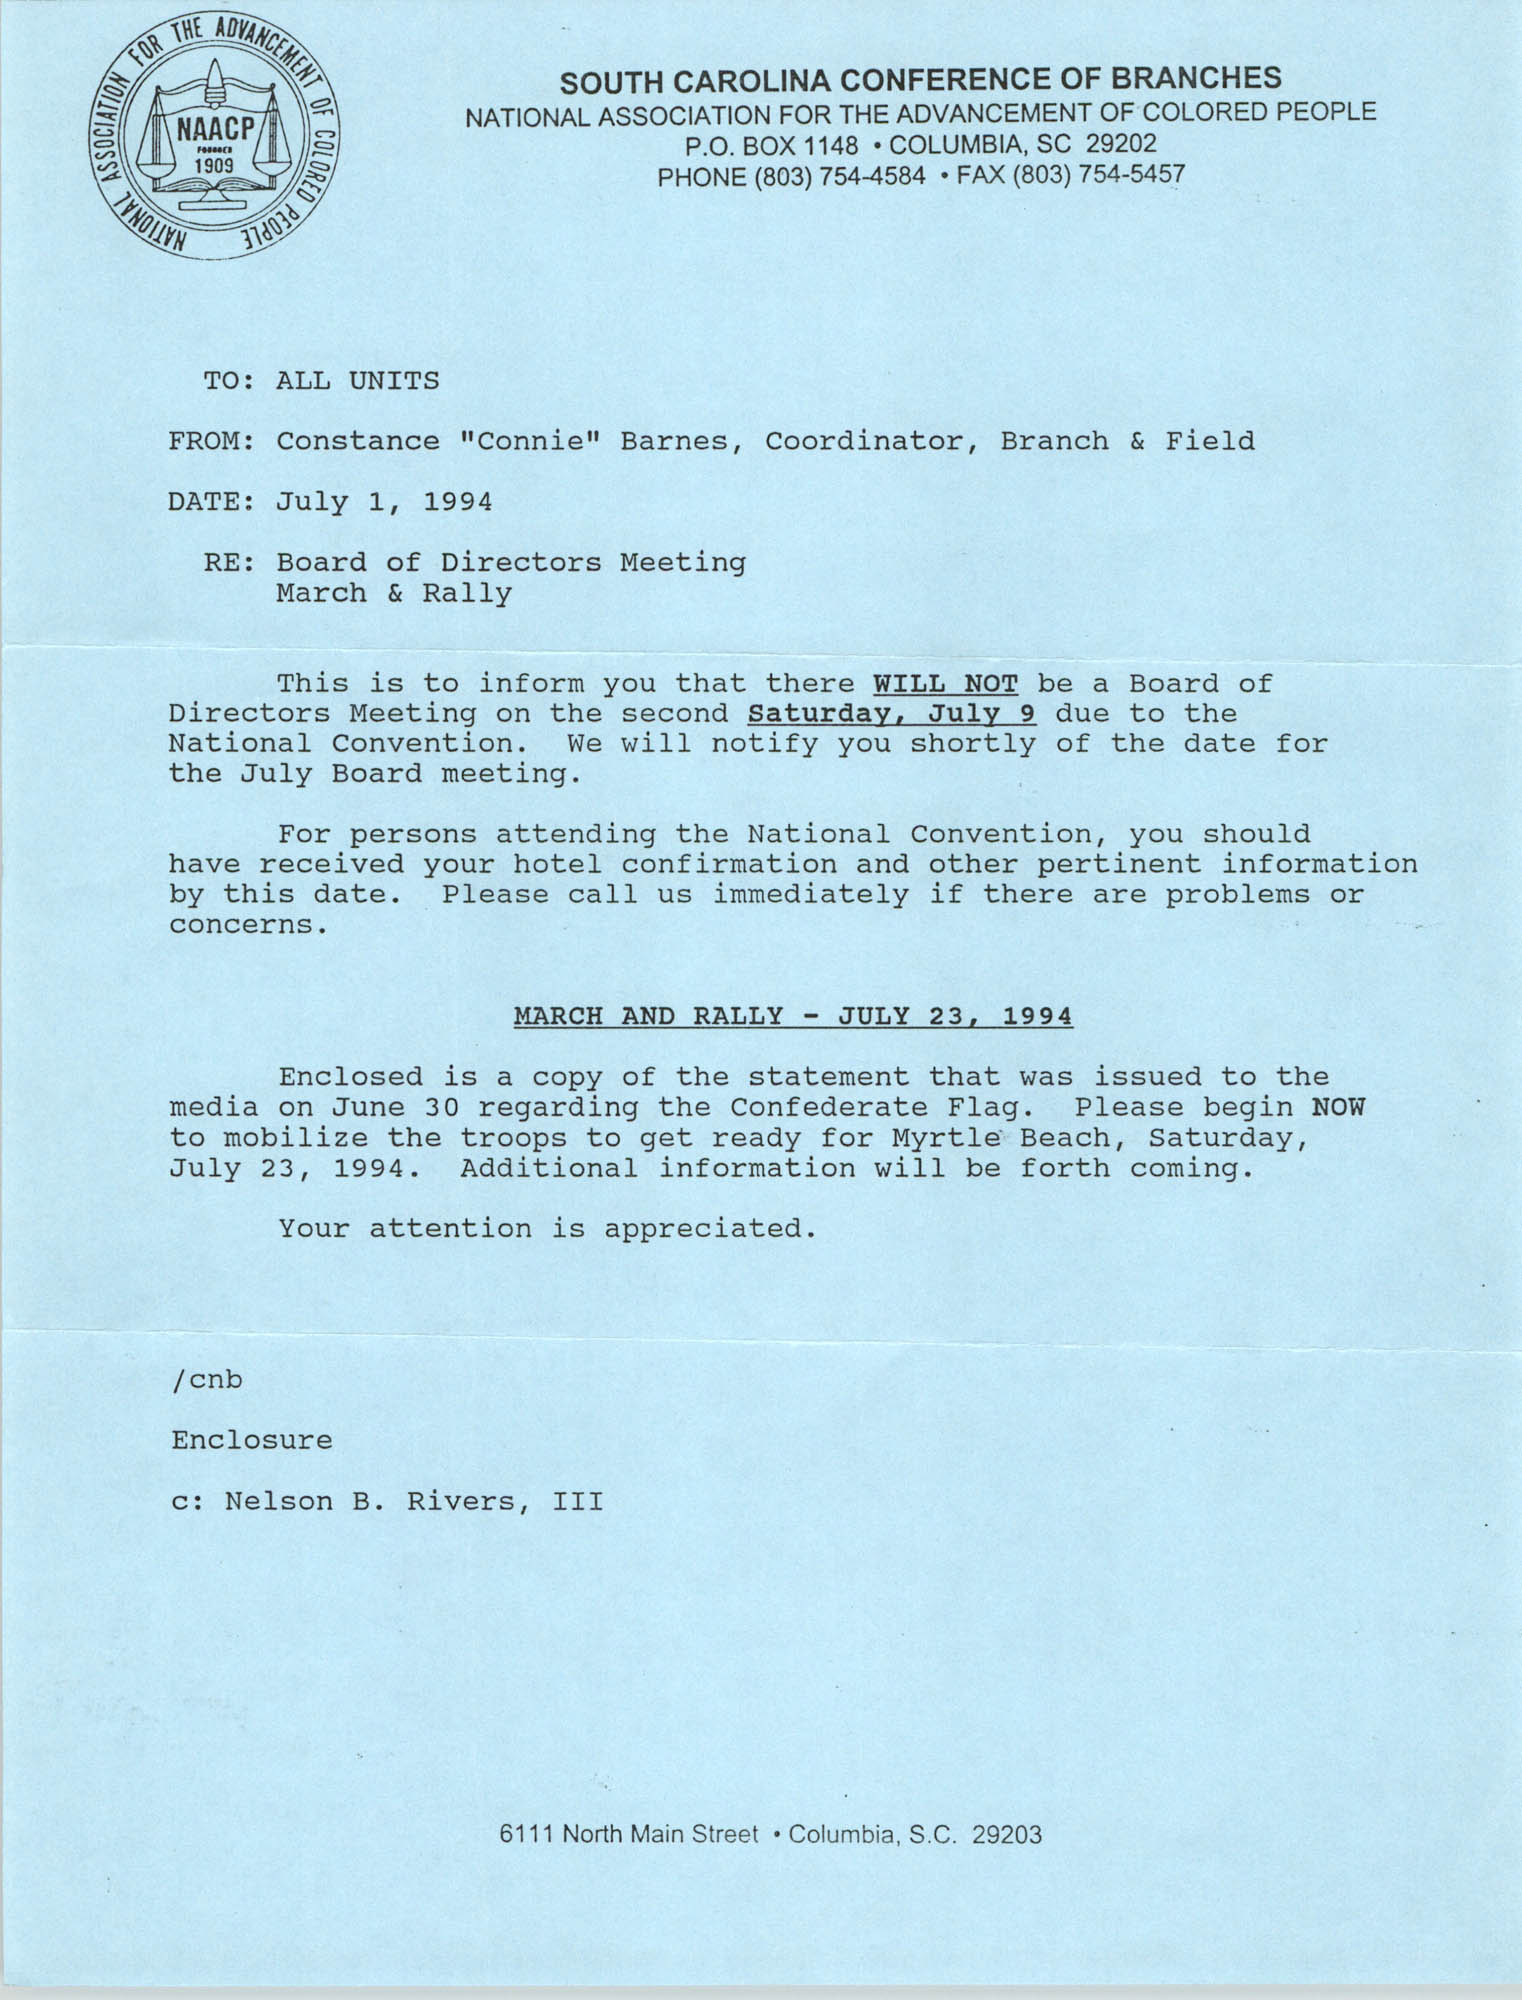 South Carolina Branch of the NAACP Memorandum, July 1, 1994